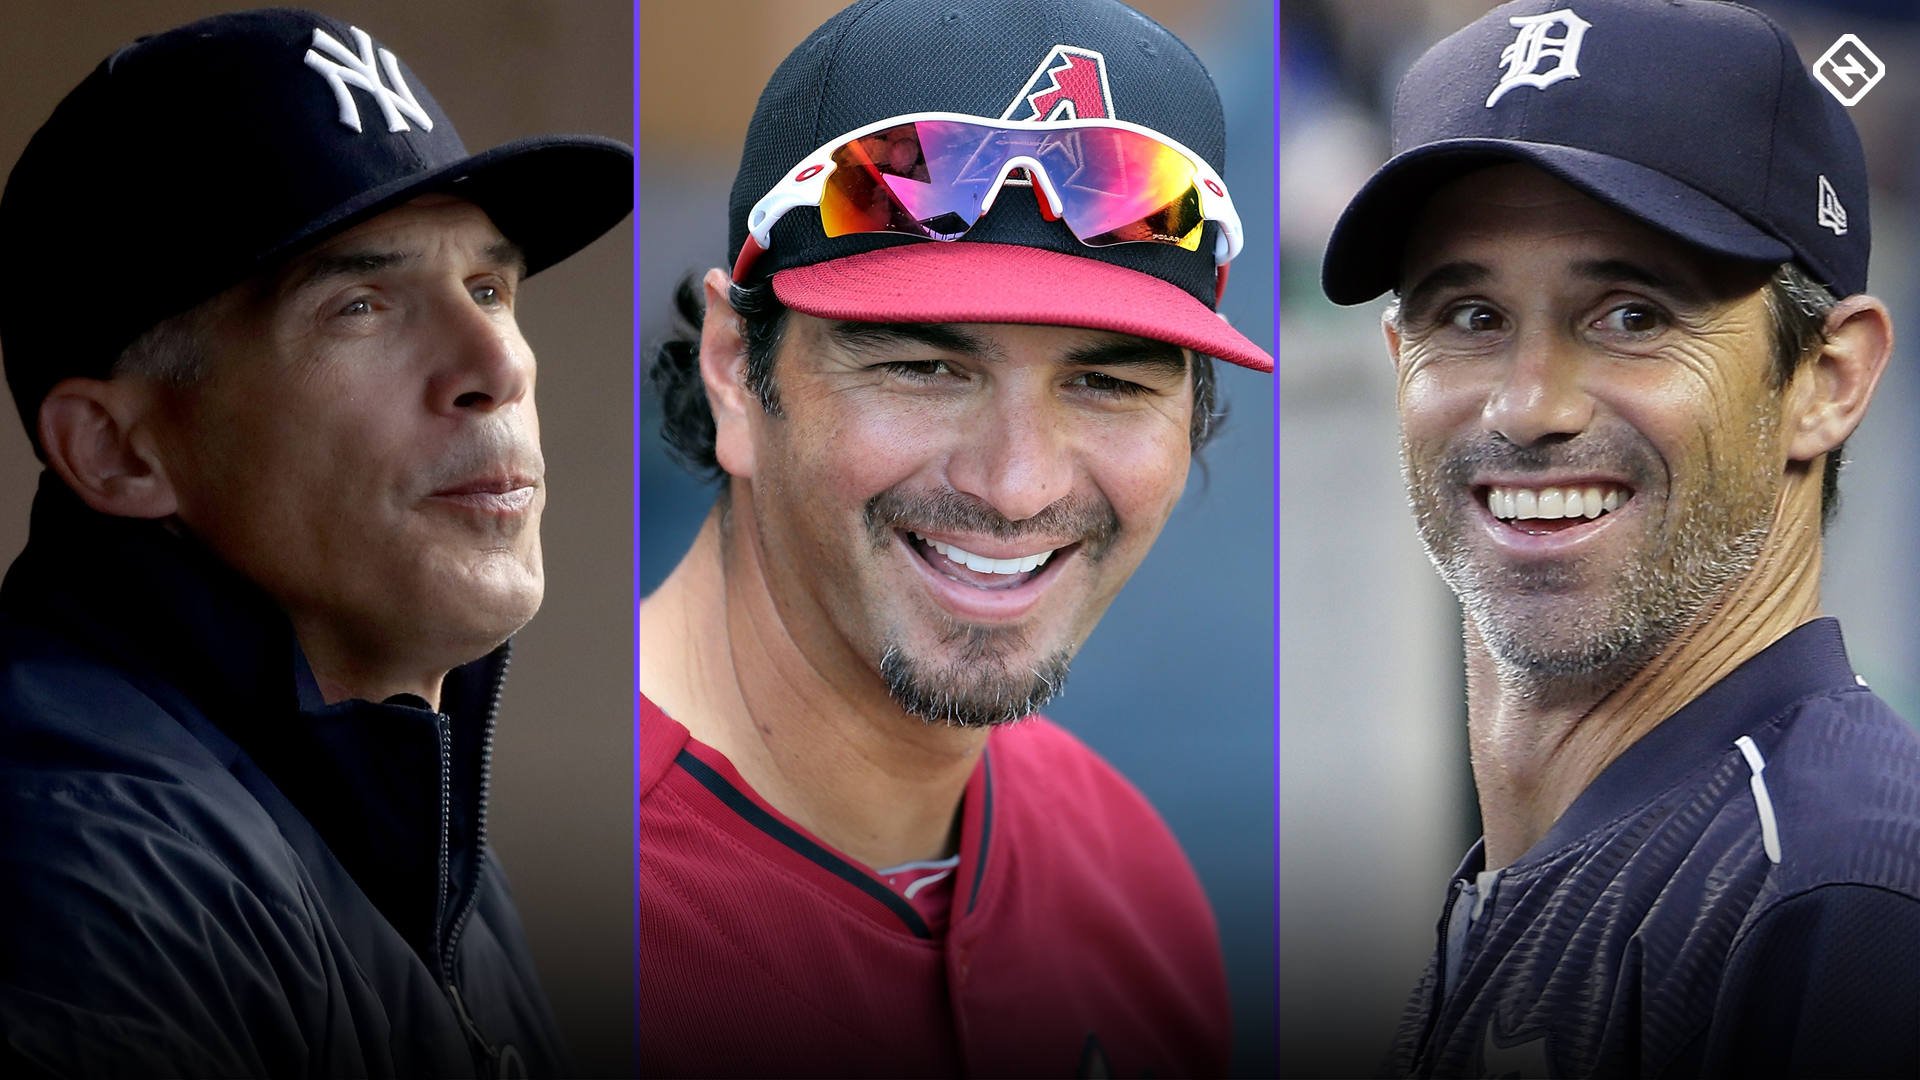 Angels manager search: Eric Chavez, Joe Girardi among potential replacements for Mike Scioscia